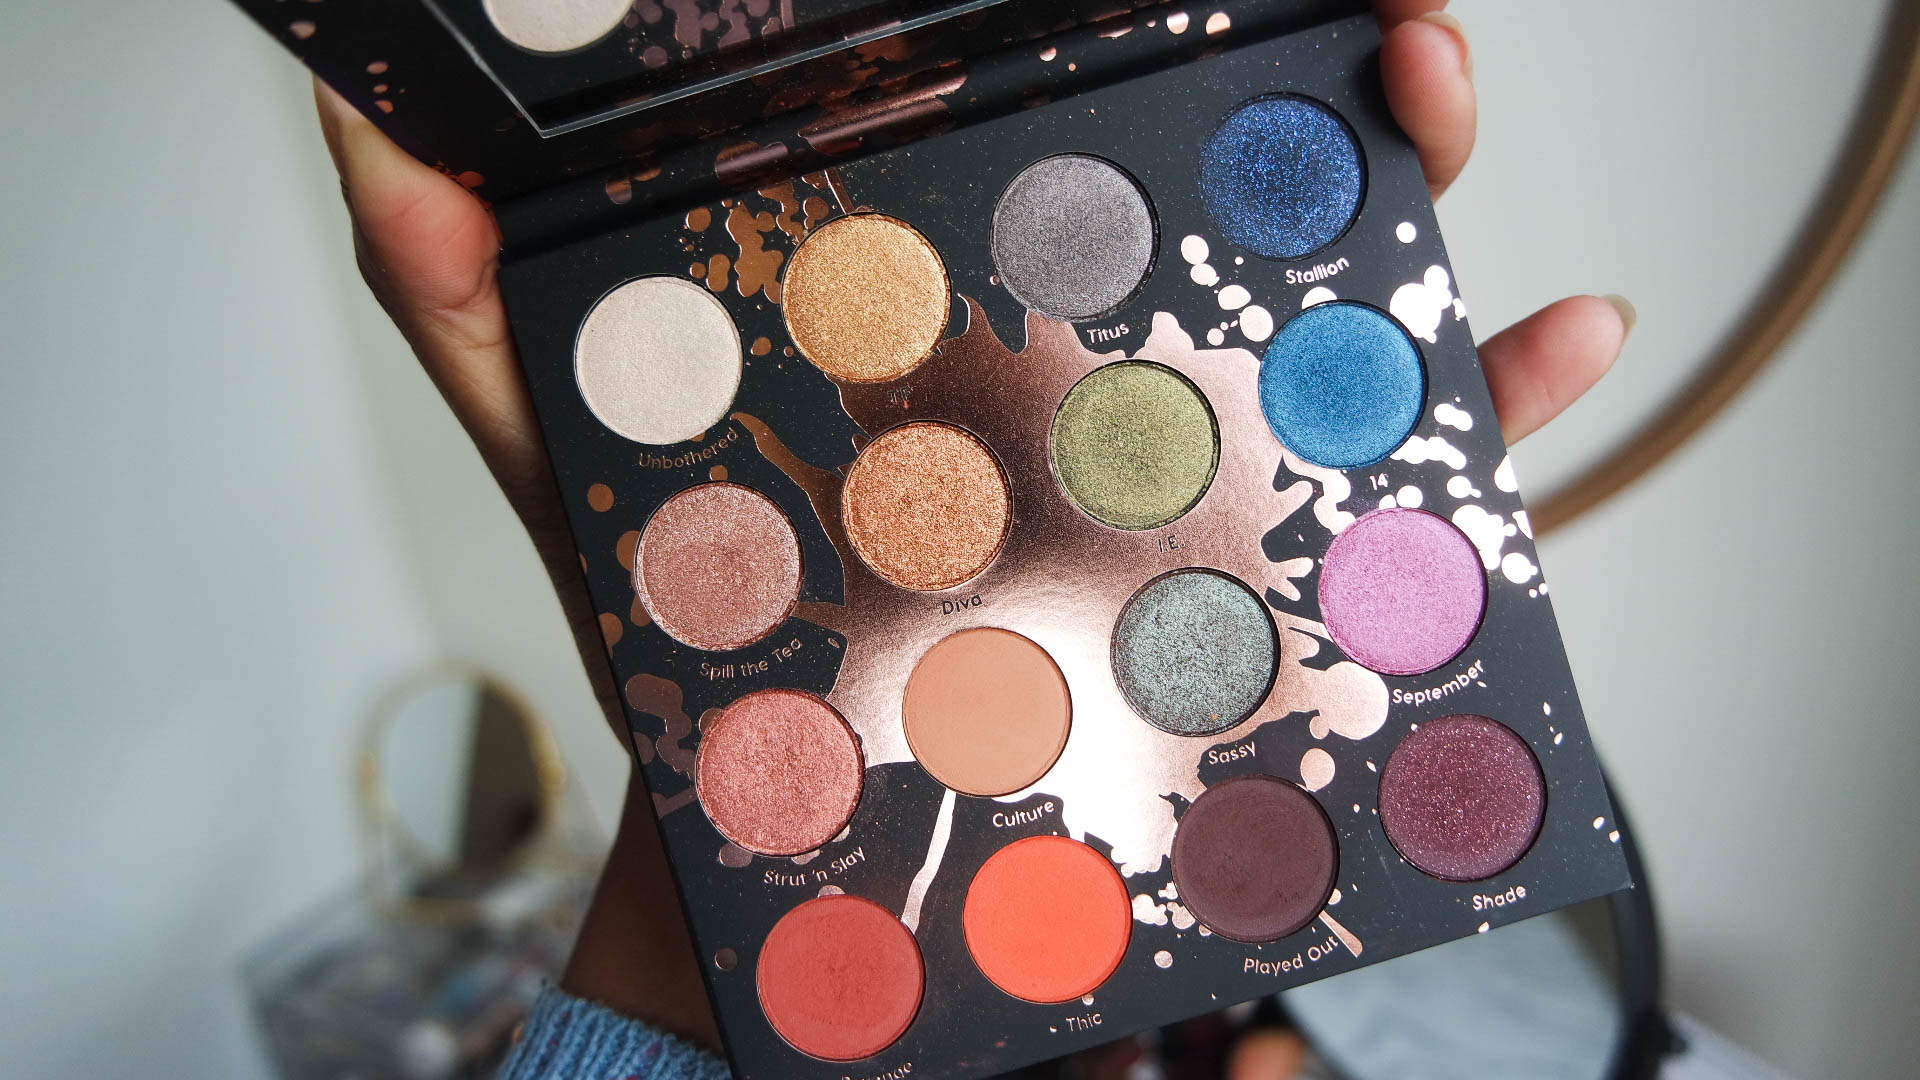 Shayla x Colourpop Perception eyeshadow palette